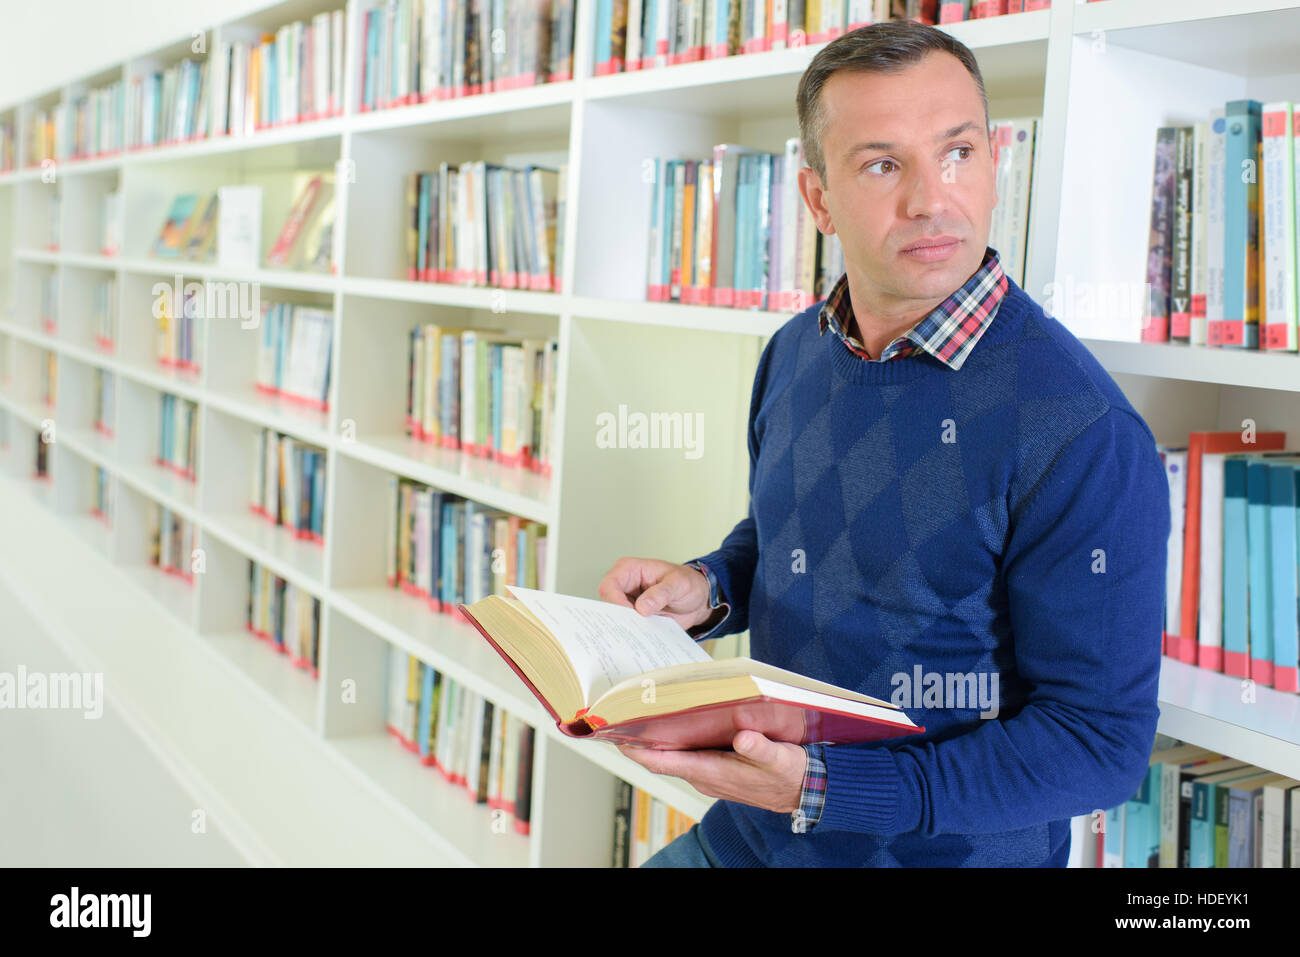 man holding a book - Stock Image